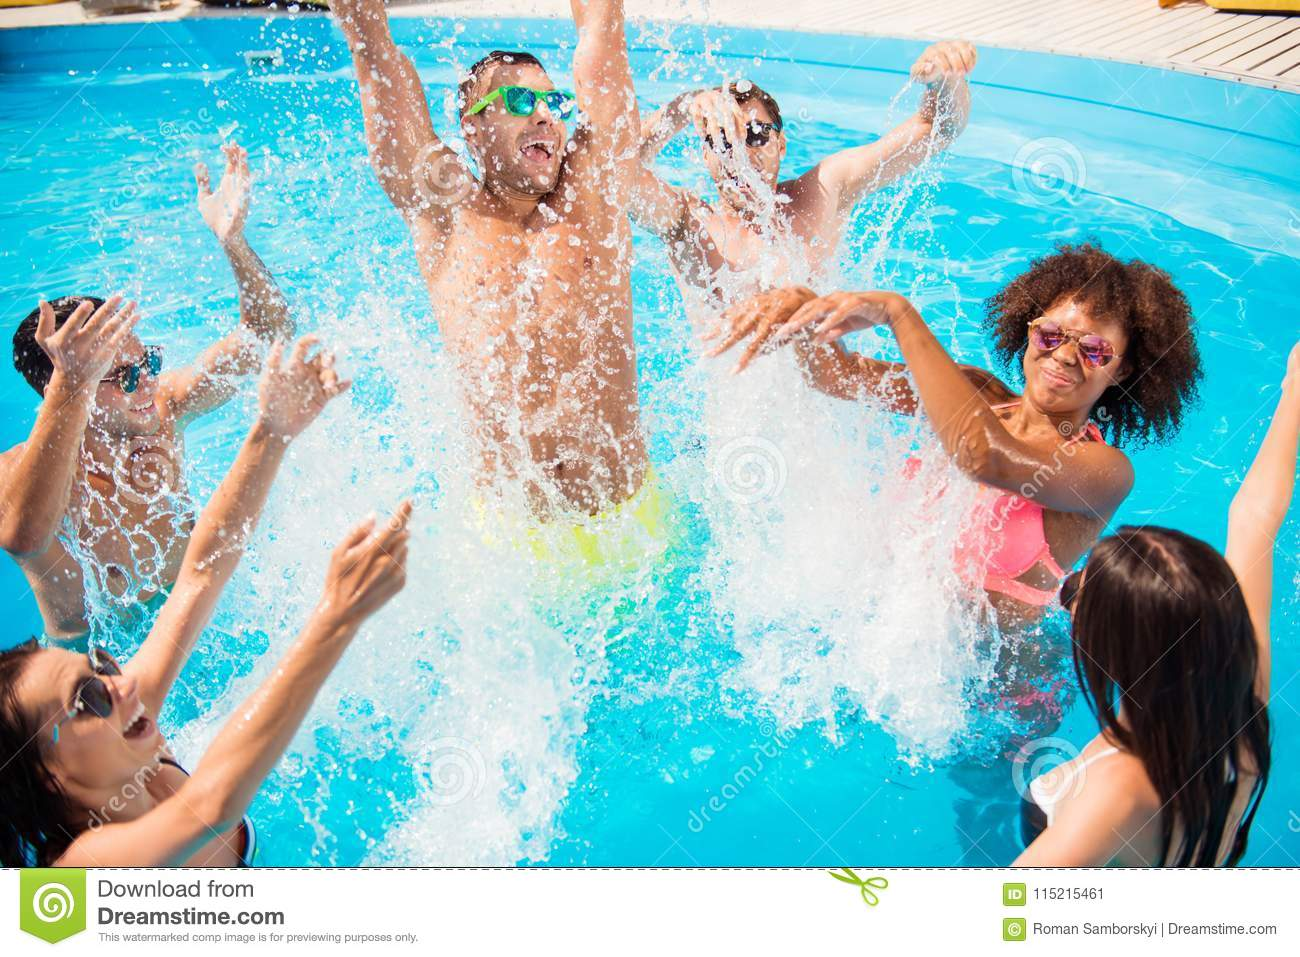 Go Crazy In The Water! Splitting And Go Insane! Crazy